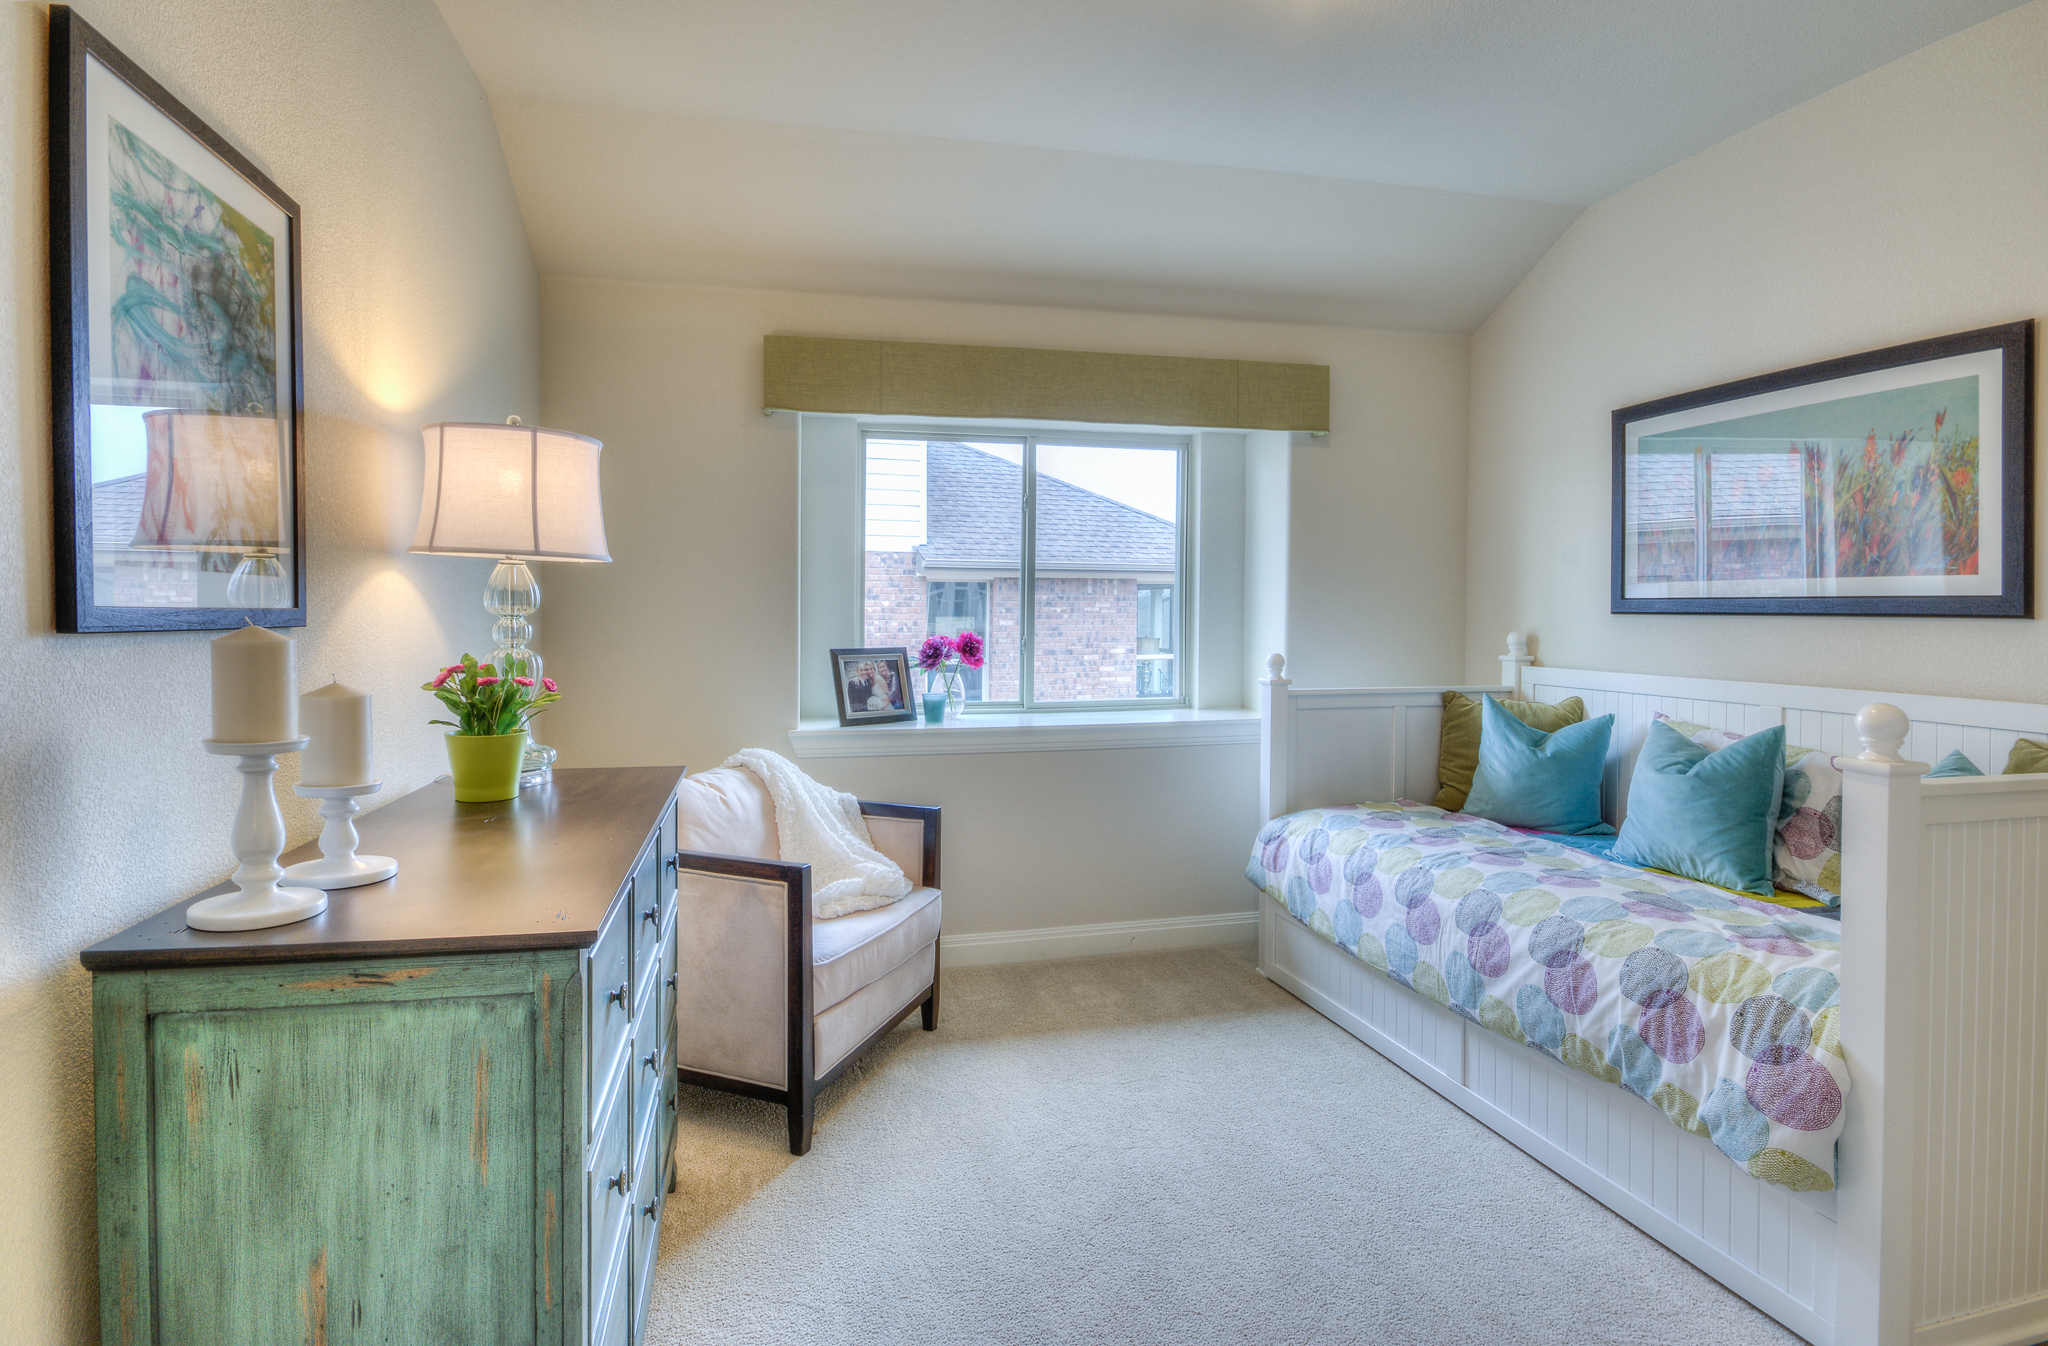 Model home bedroom interior design in Austin, TX by Michelle Thomas